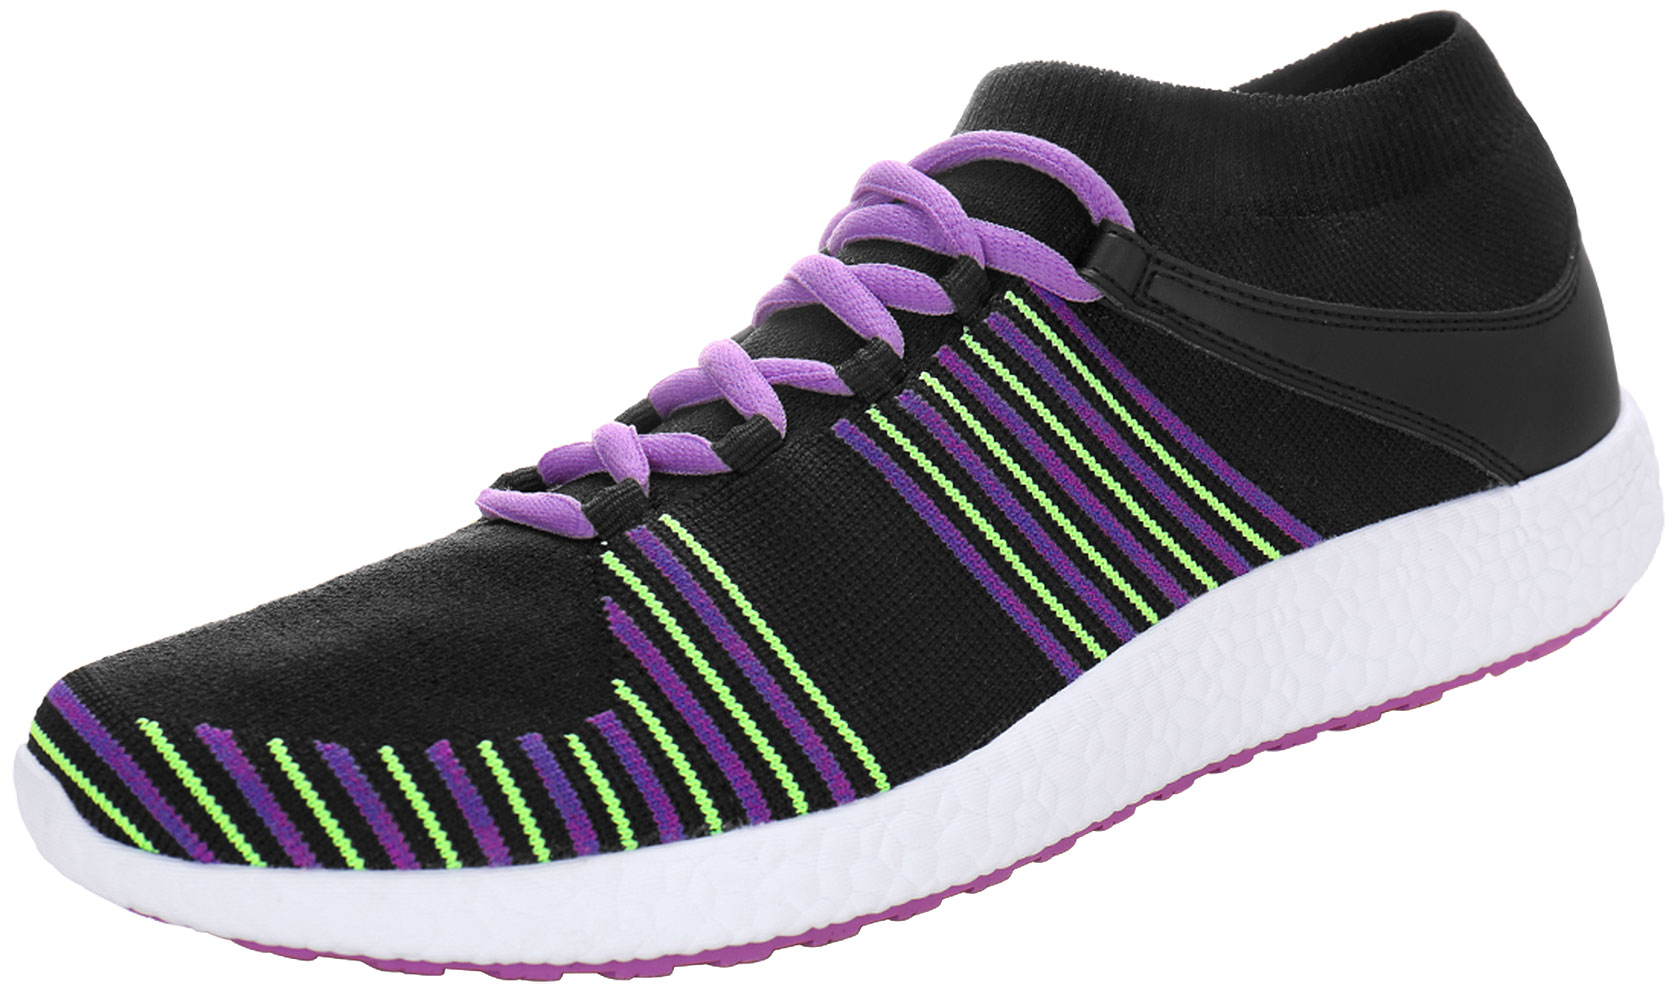 PYPE Women Knitting Mesh Upper Striped Lace Up Training Shoes Black US 8.5